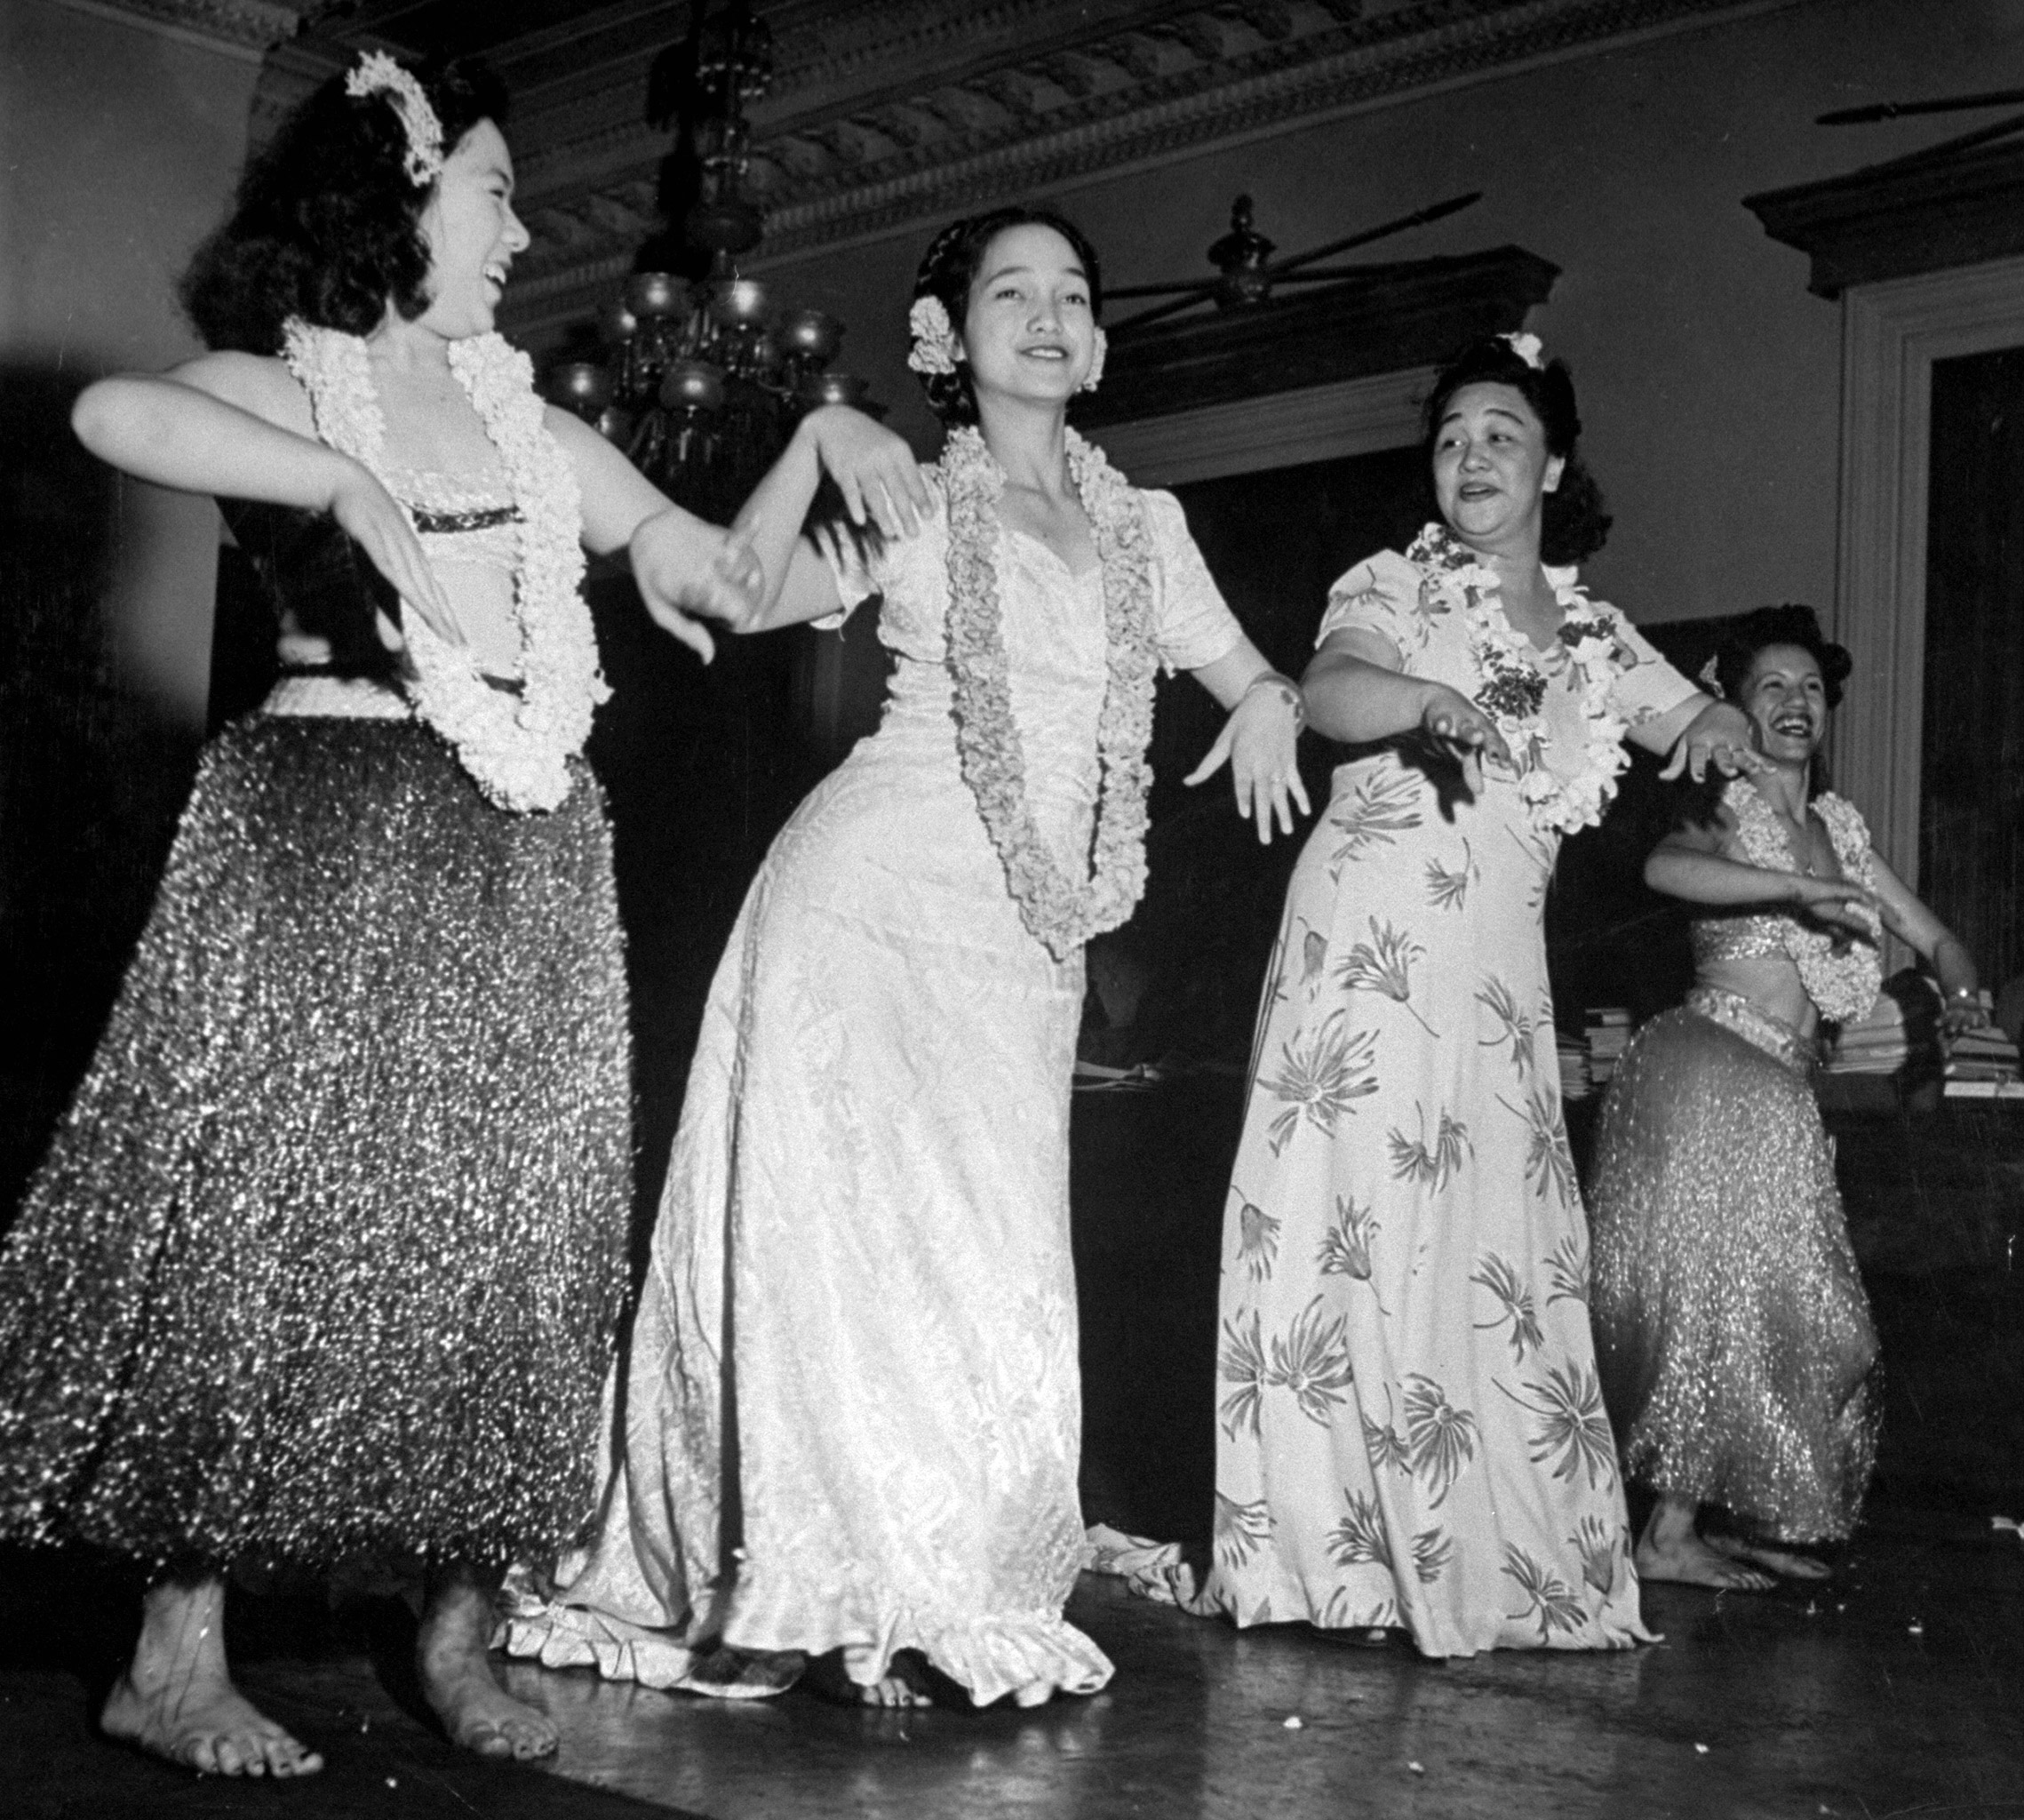 Women dressed in hula skirts dance onstage.